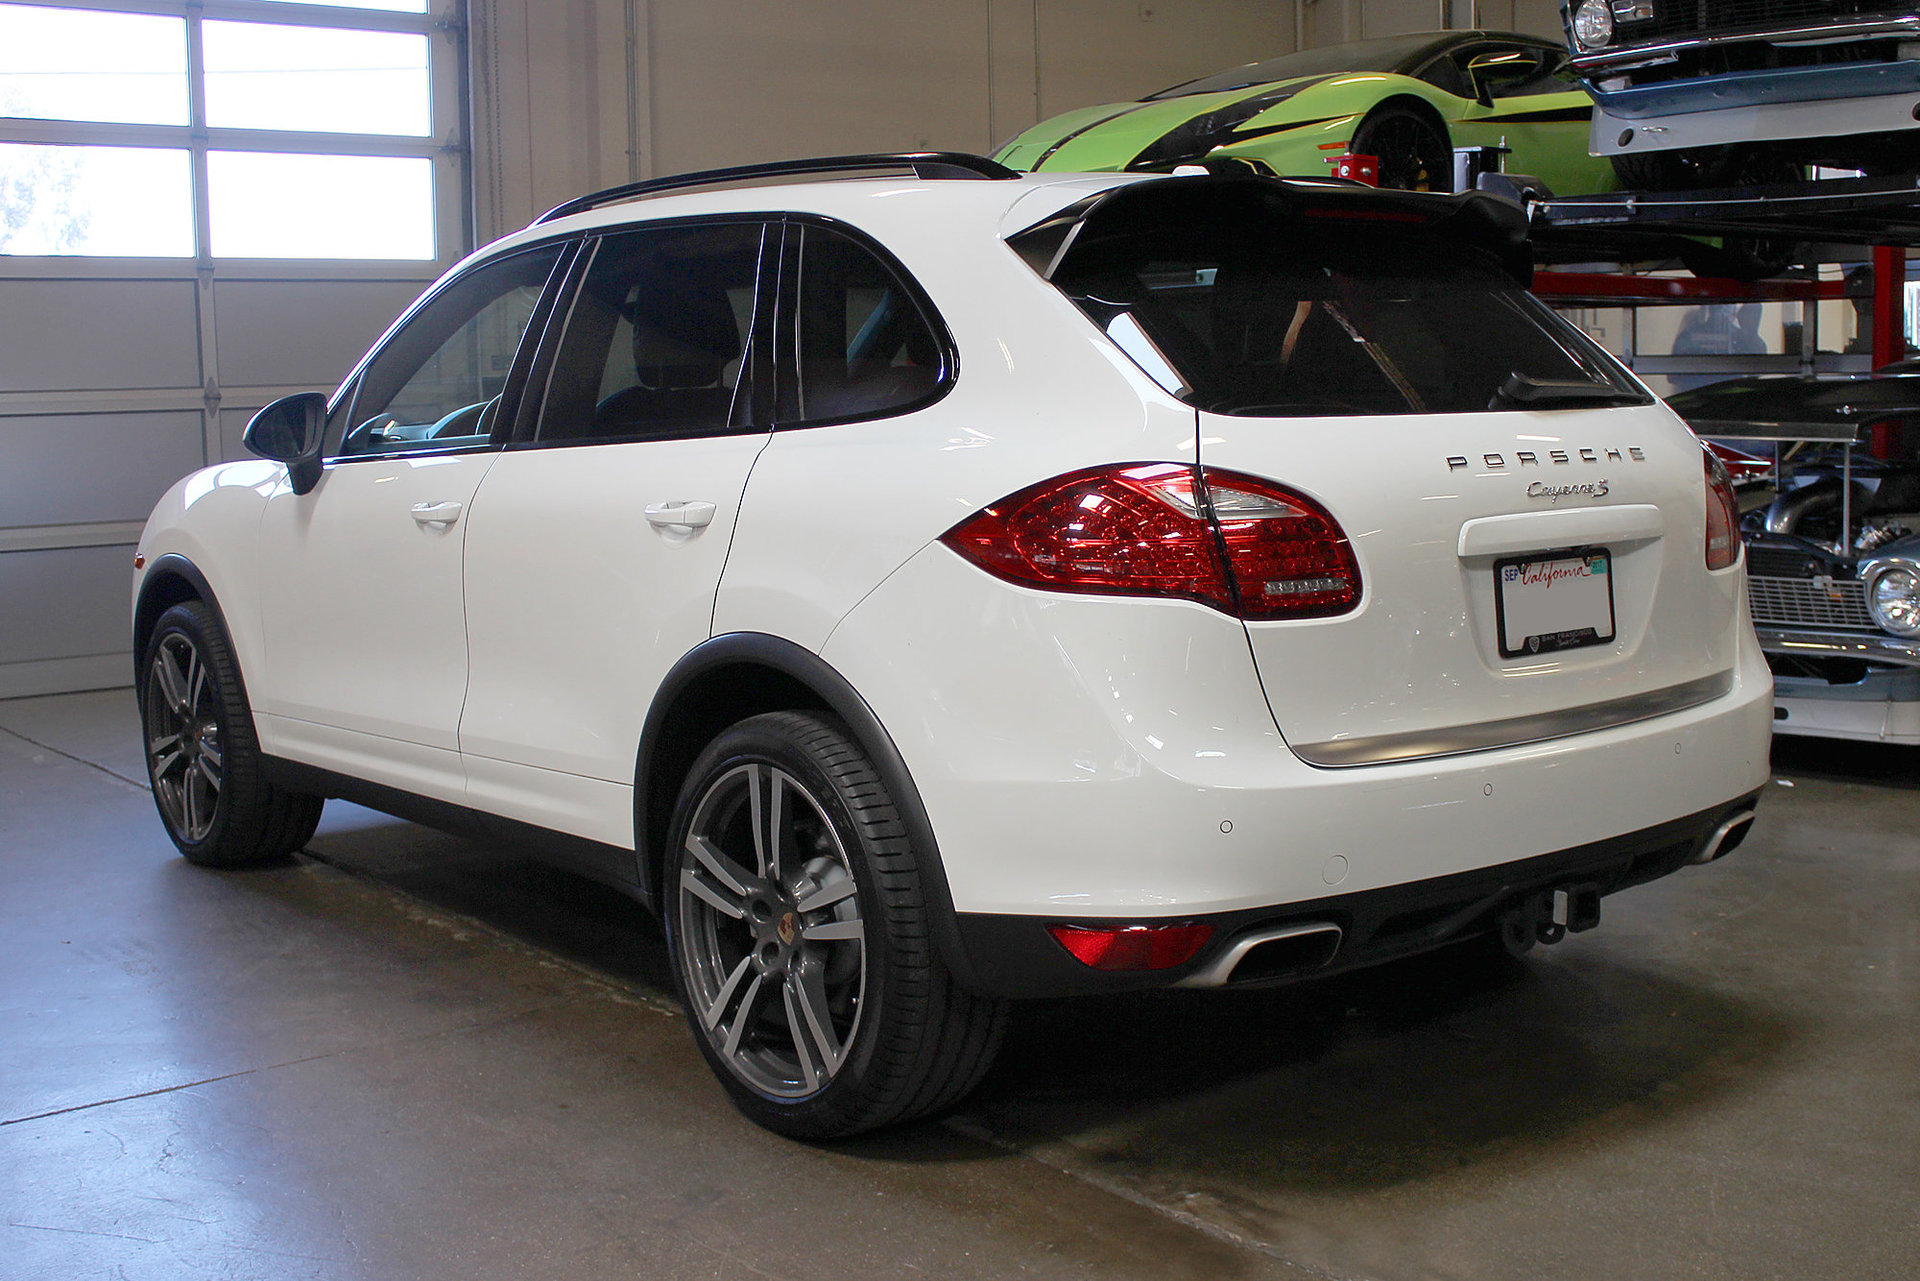 2013 porsche cayenne v8 s for sale 74182 mcg. Black Bedroom Furniture Sets. Home Design Ideas